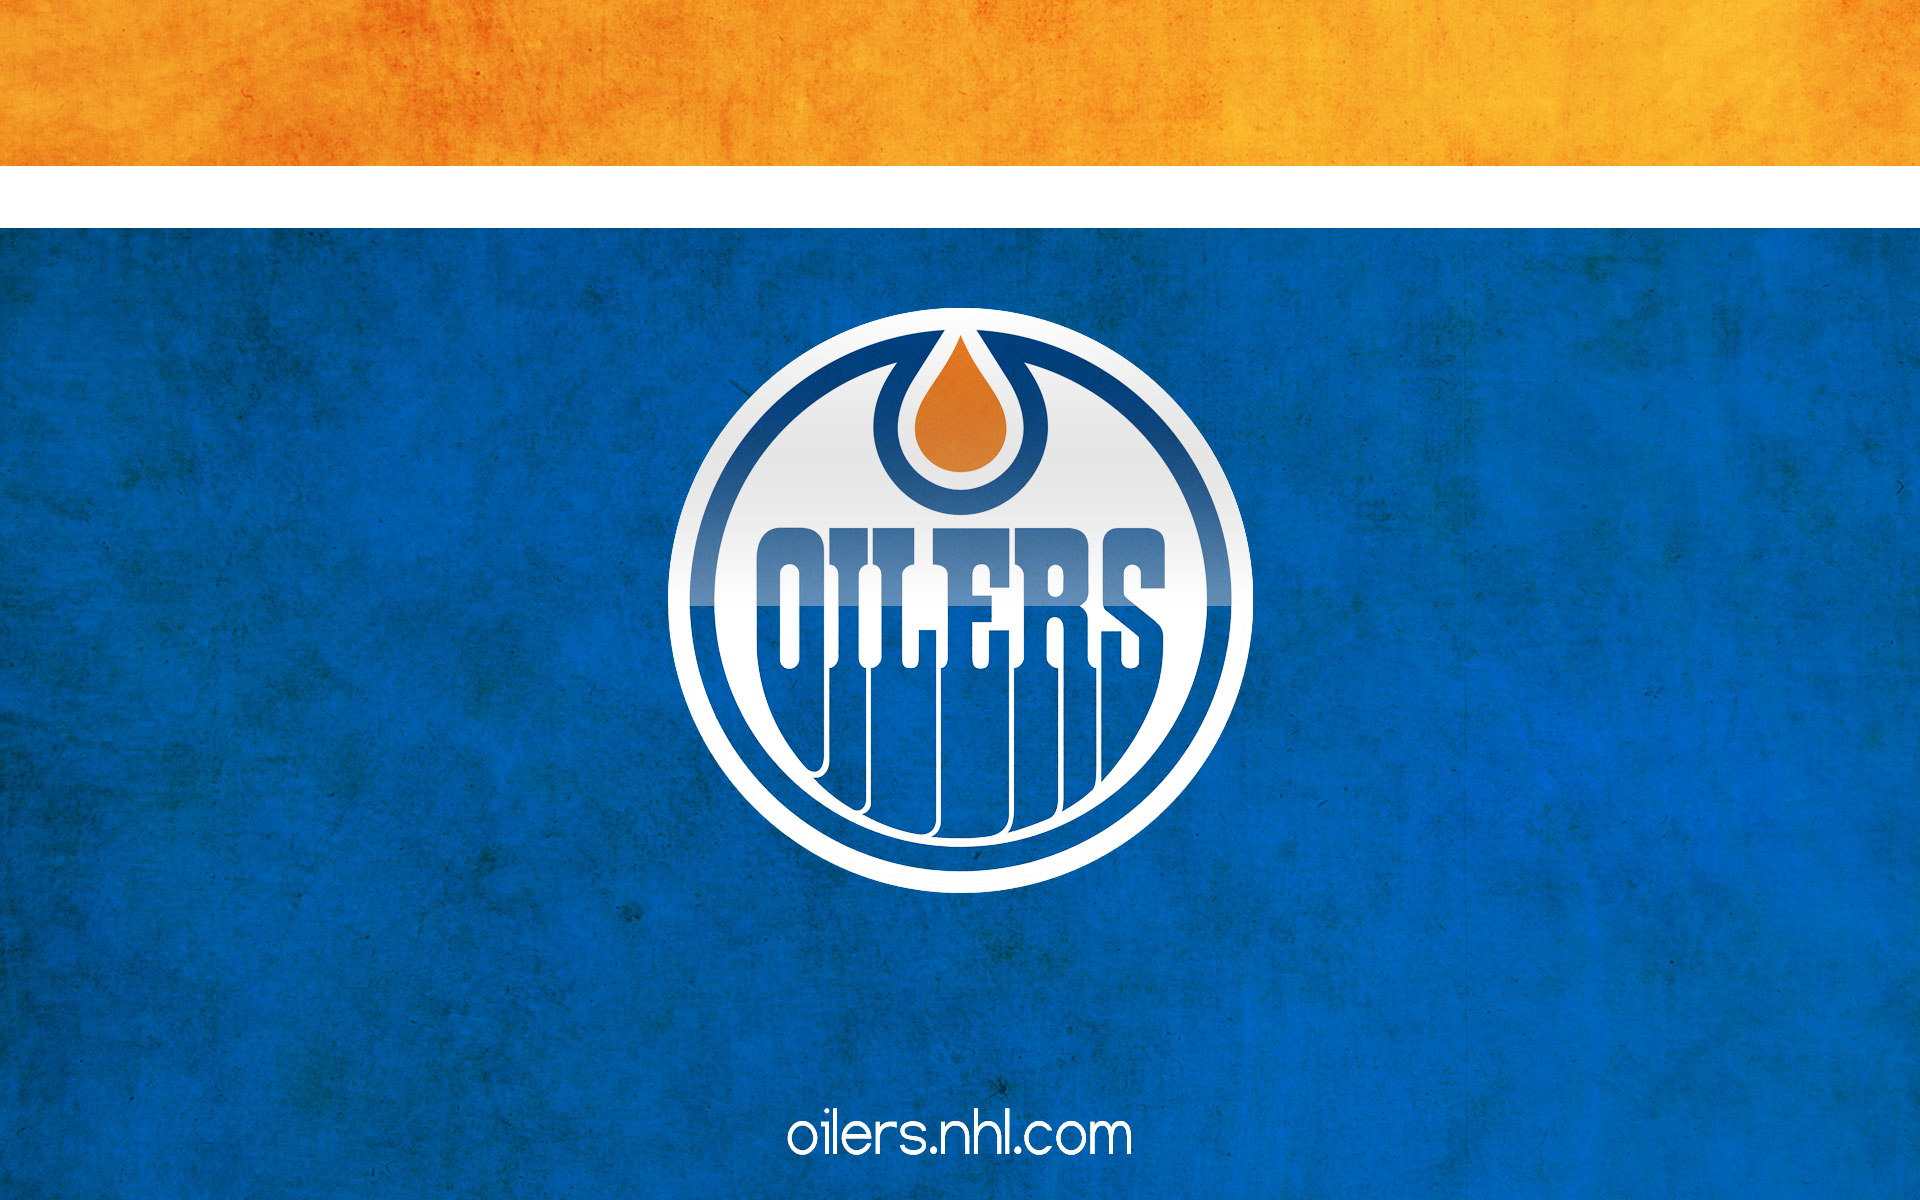 NHL Wallpapers   Edmonton Oilers Logo 1920x1200 wallpaper 1920x1200